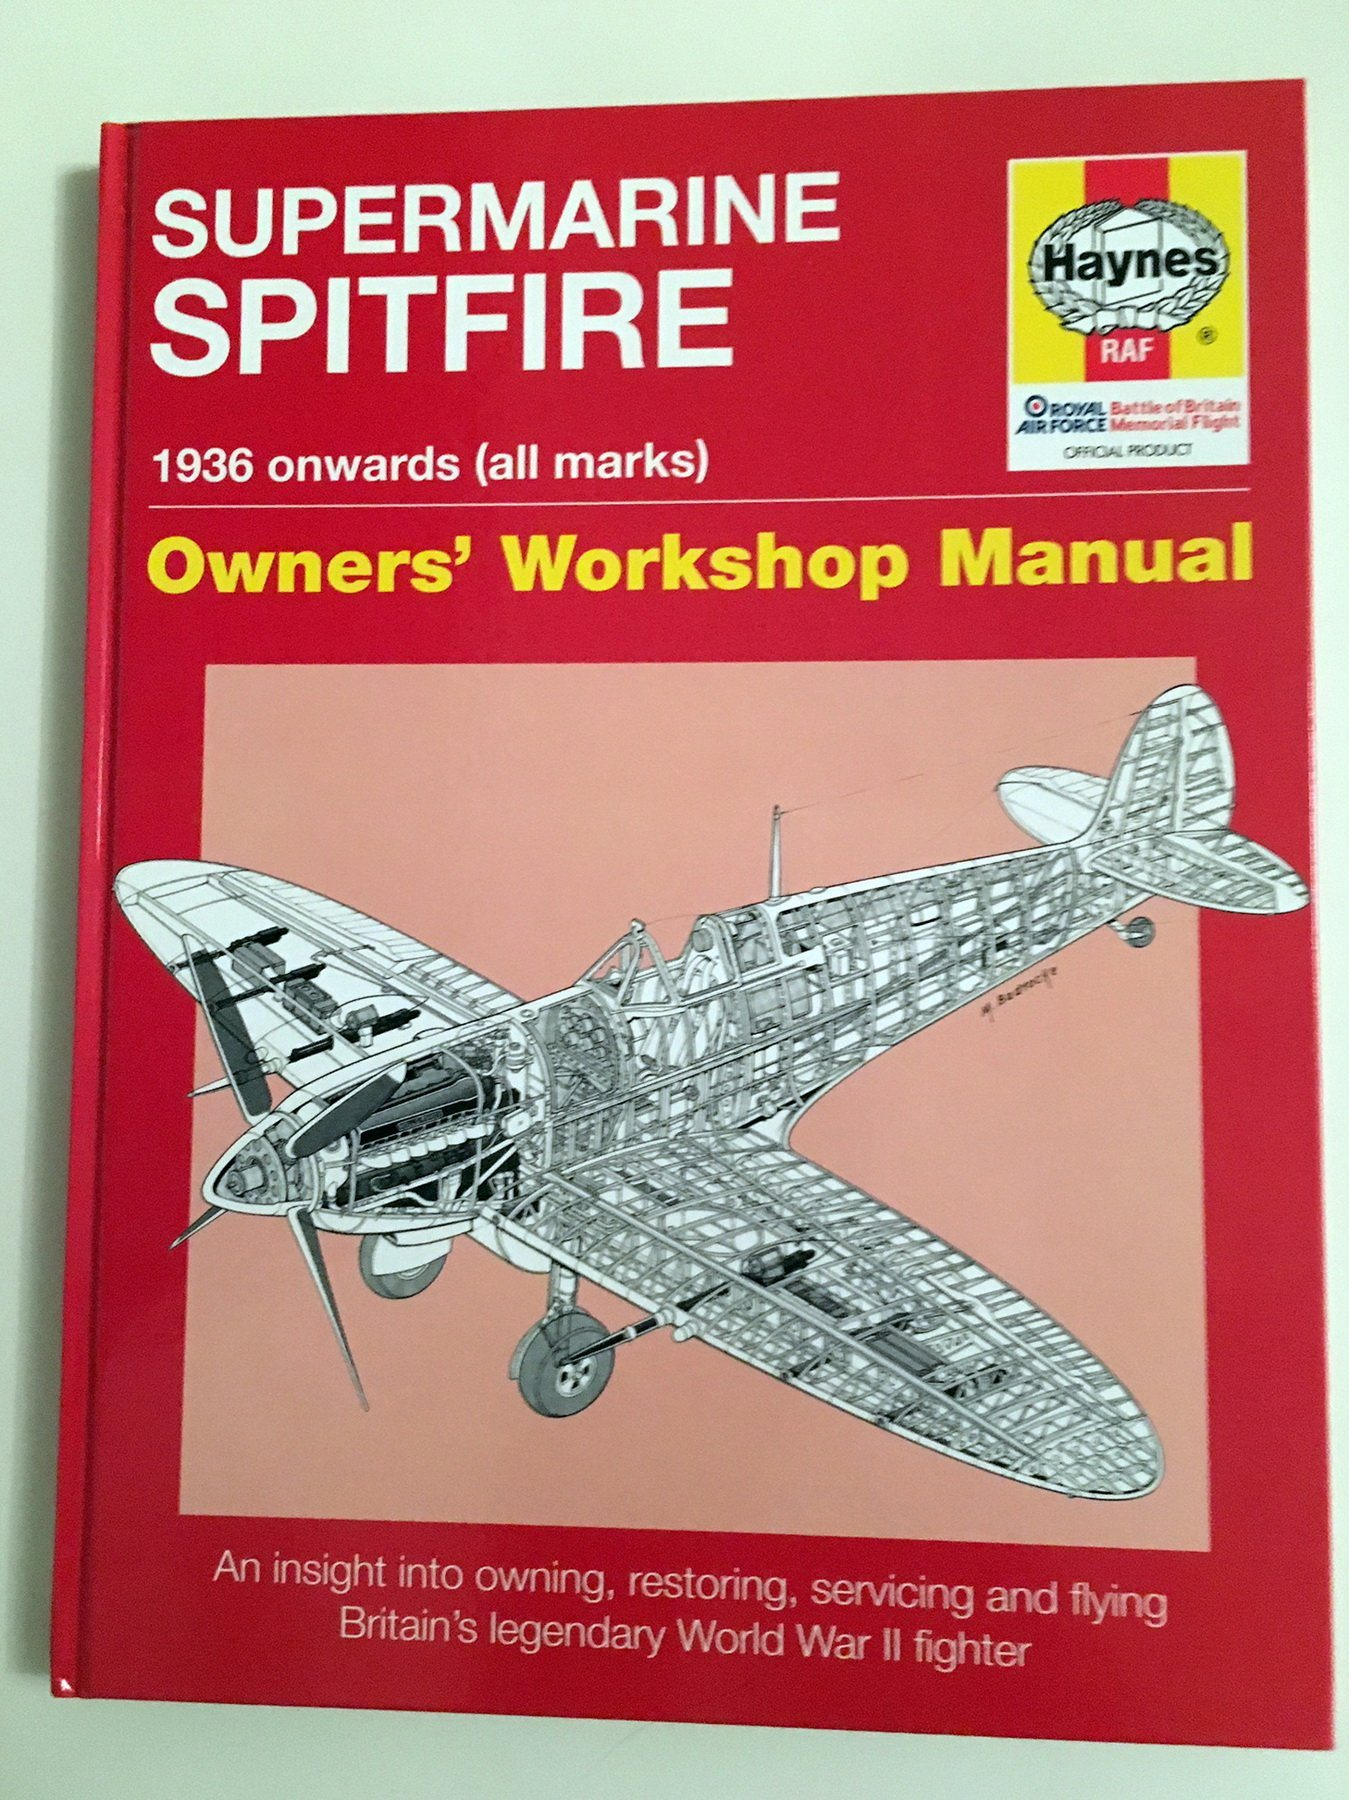 Supermarine Spitfire Owners' Workshop Manual (Haynes)